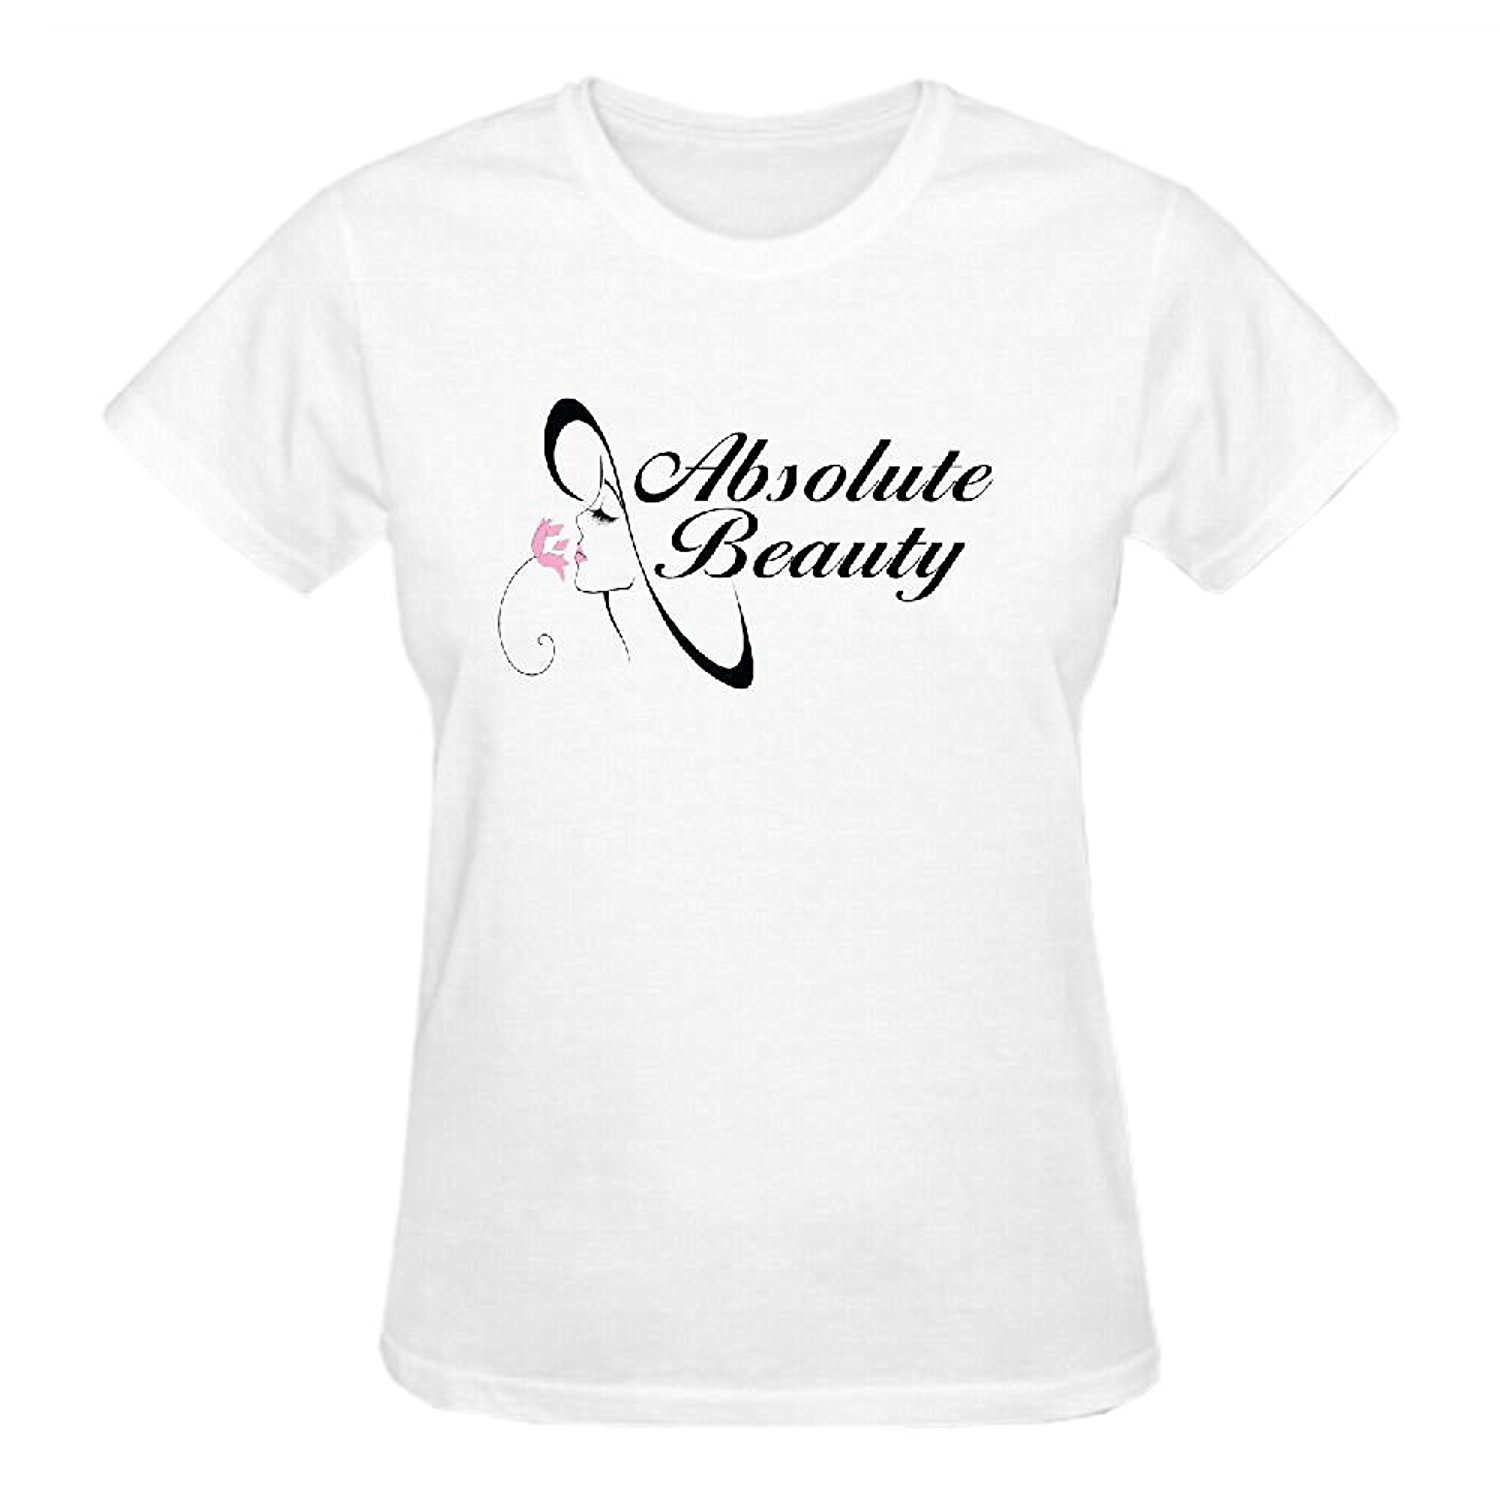 Black t shirt online design - Premium Fitted Quality Tee Shirts Beauty Salon Womens T Shirts With Designs Round Neck Summer Design Your Own T Shirt Online